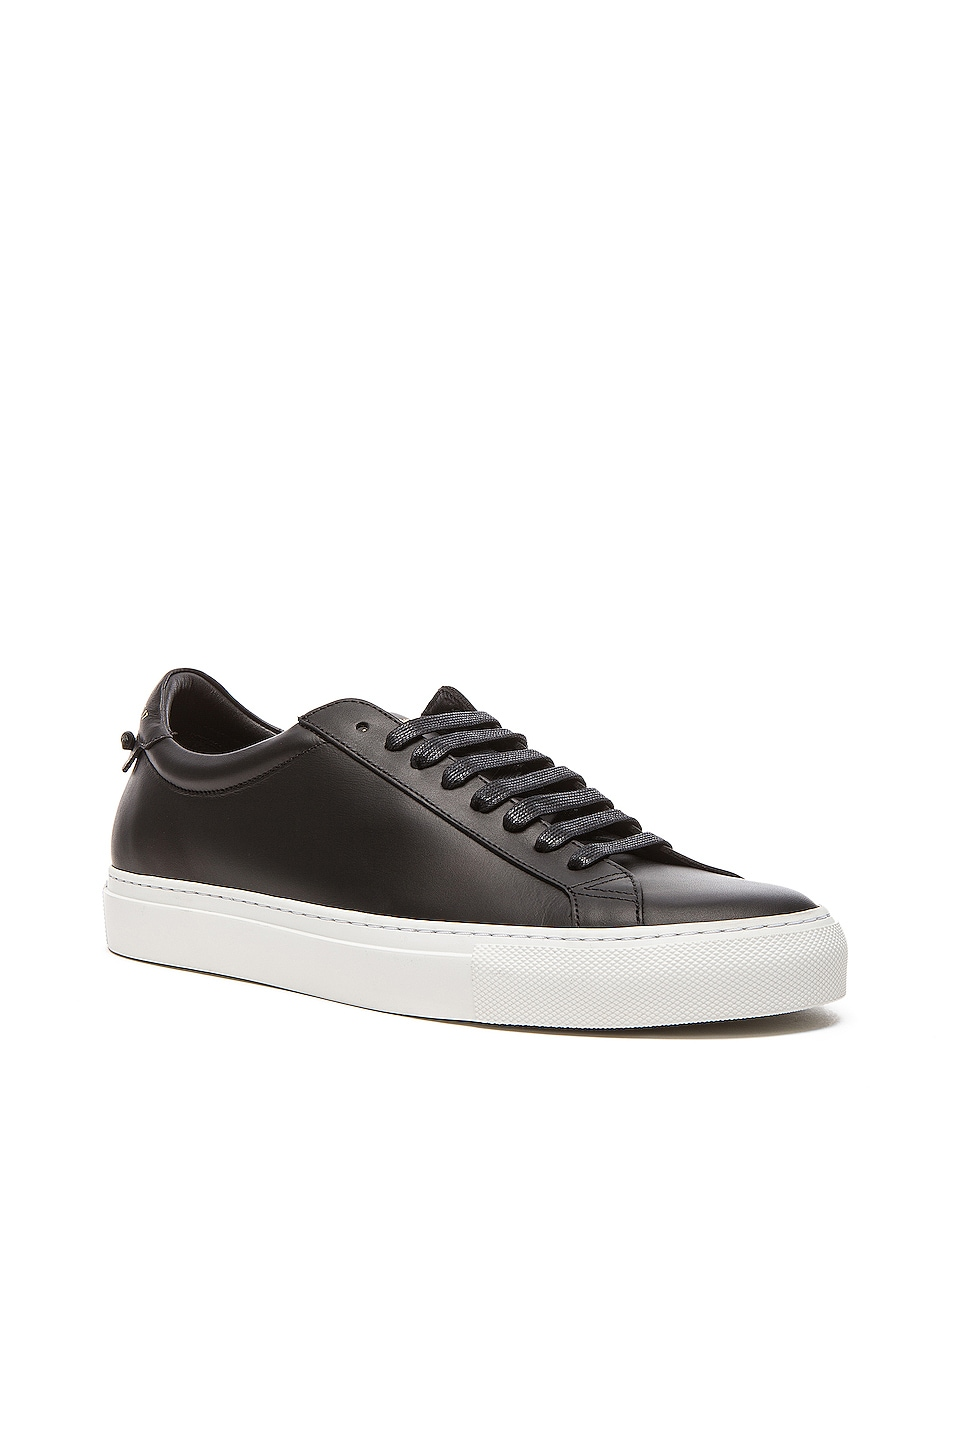 Image 2 of Givenchy Knots Low Top Leather Sneakers in Black